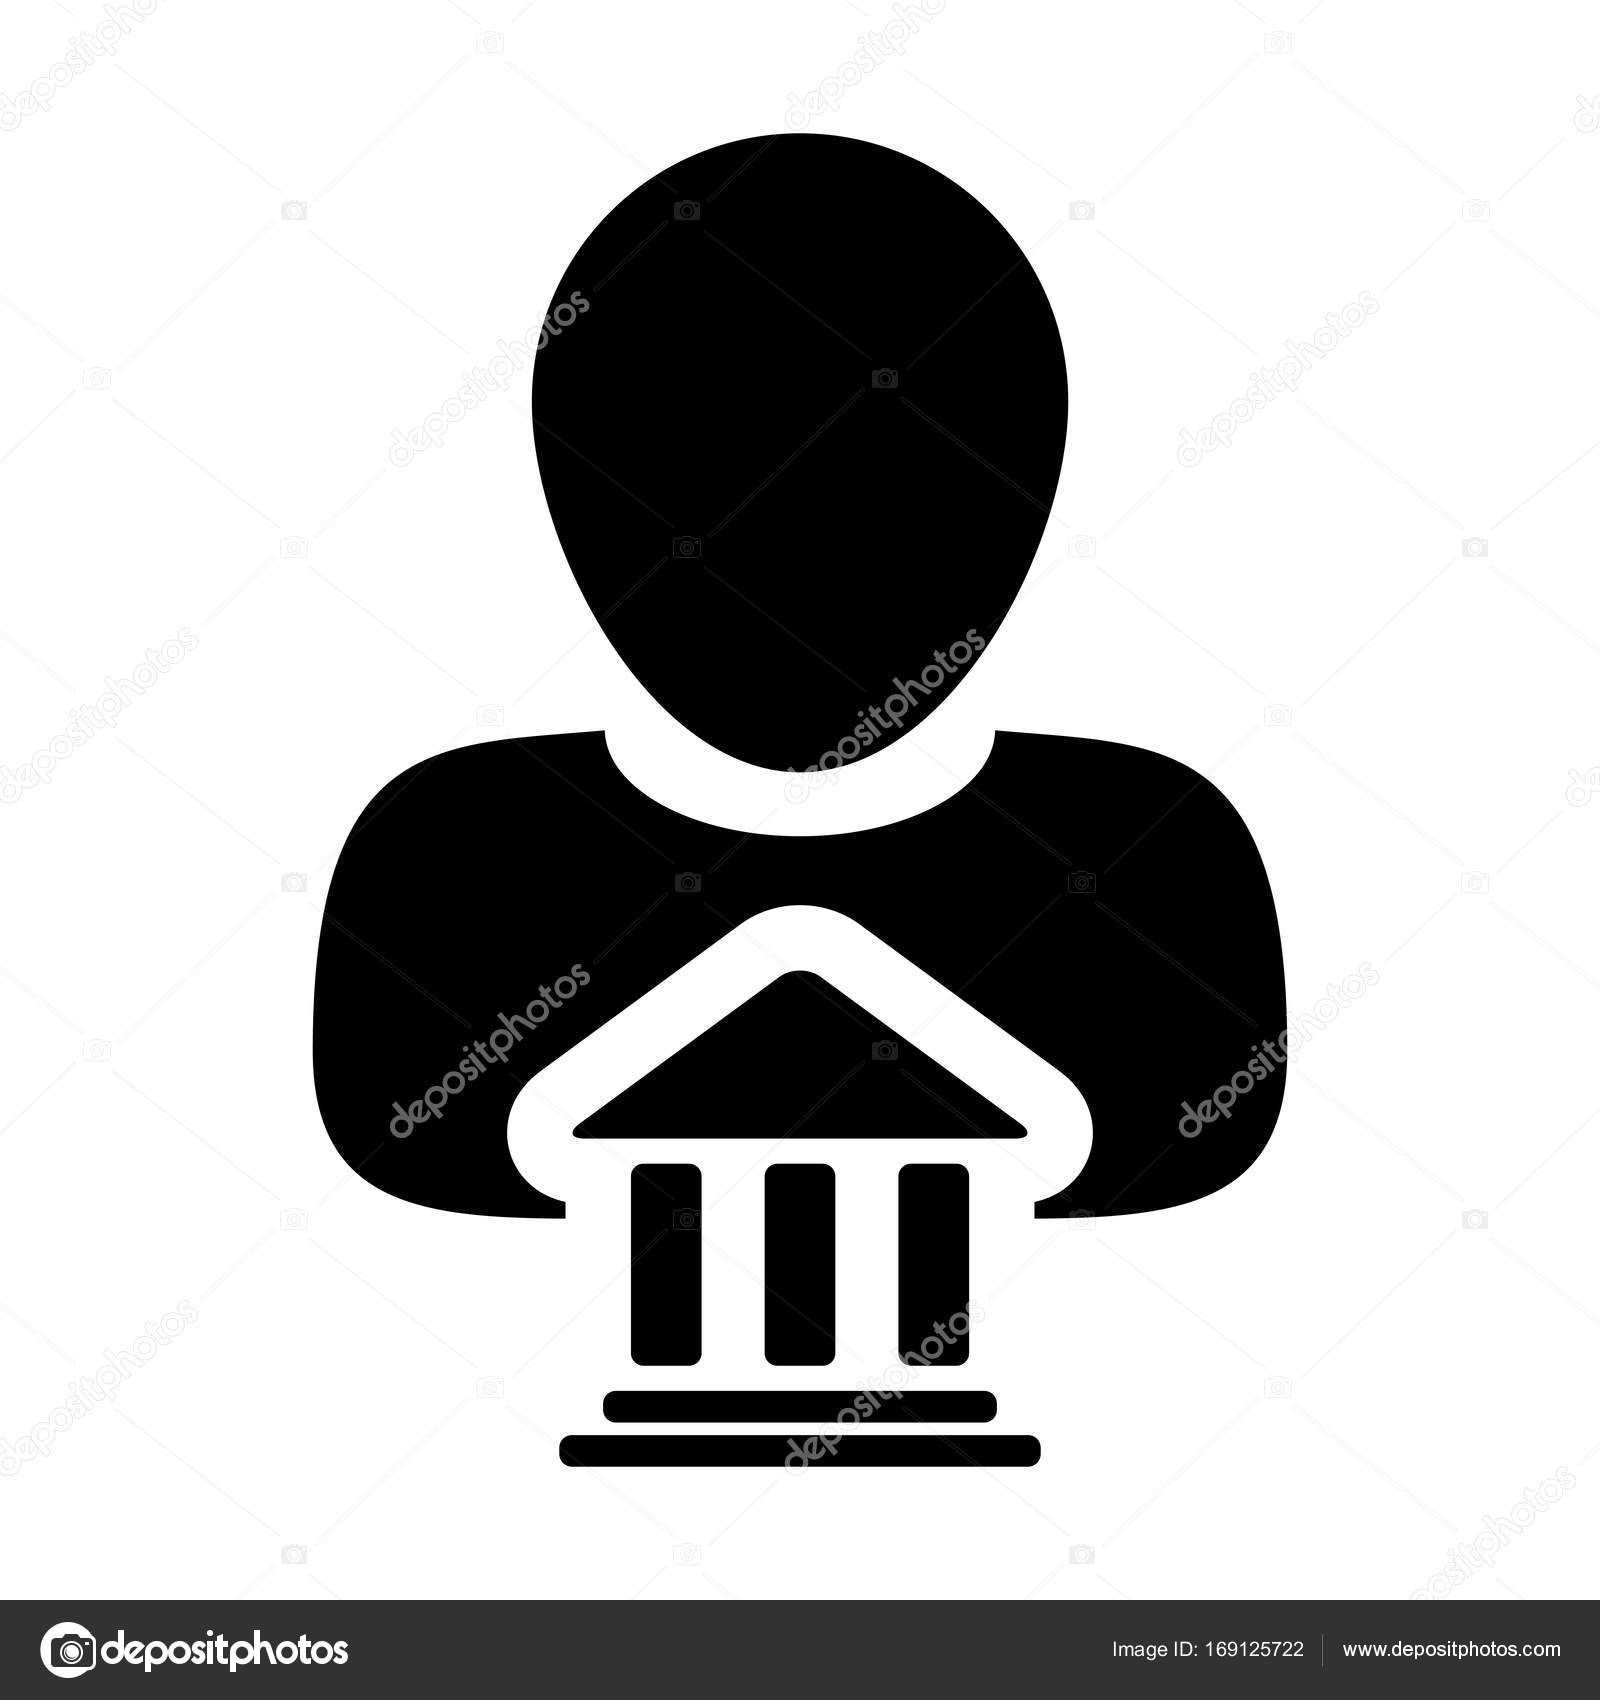 Bank icon vector with person profile male symbol stock vector bank icon vector with person profile male avatar symbol for banking and finance in flat color glyph pictogram illustration vector by tuktukdesign biocorpaavc Gallery